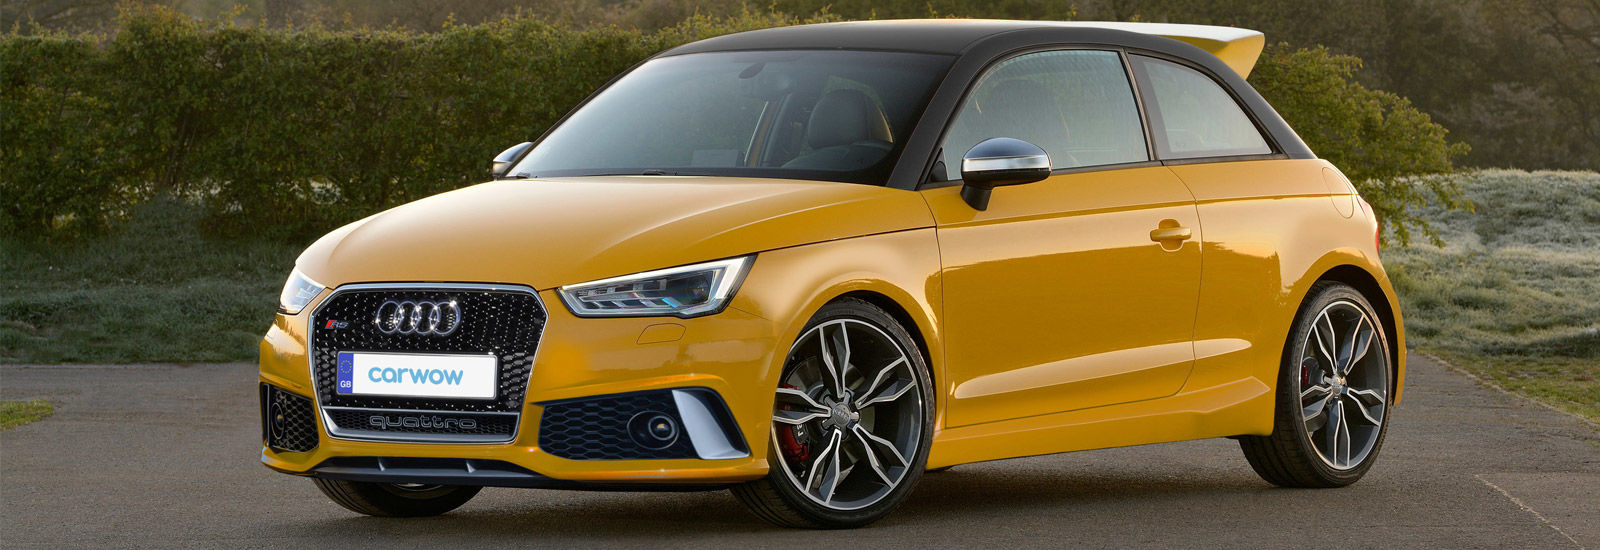 2017 audi rs1 styling